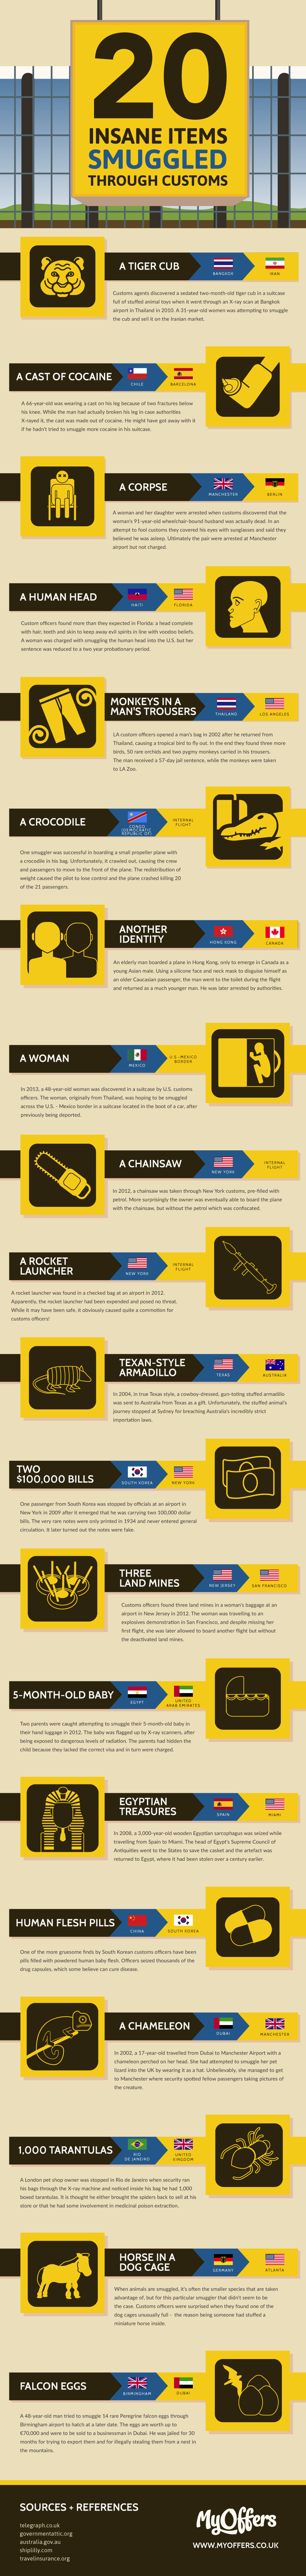 20 Insane Items Smuggled Through Customs Infographic